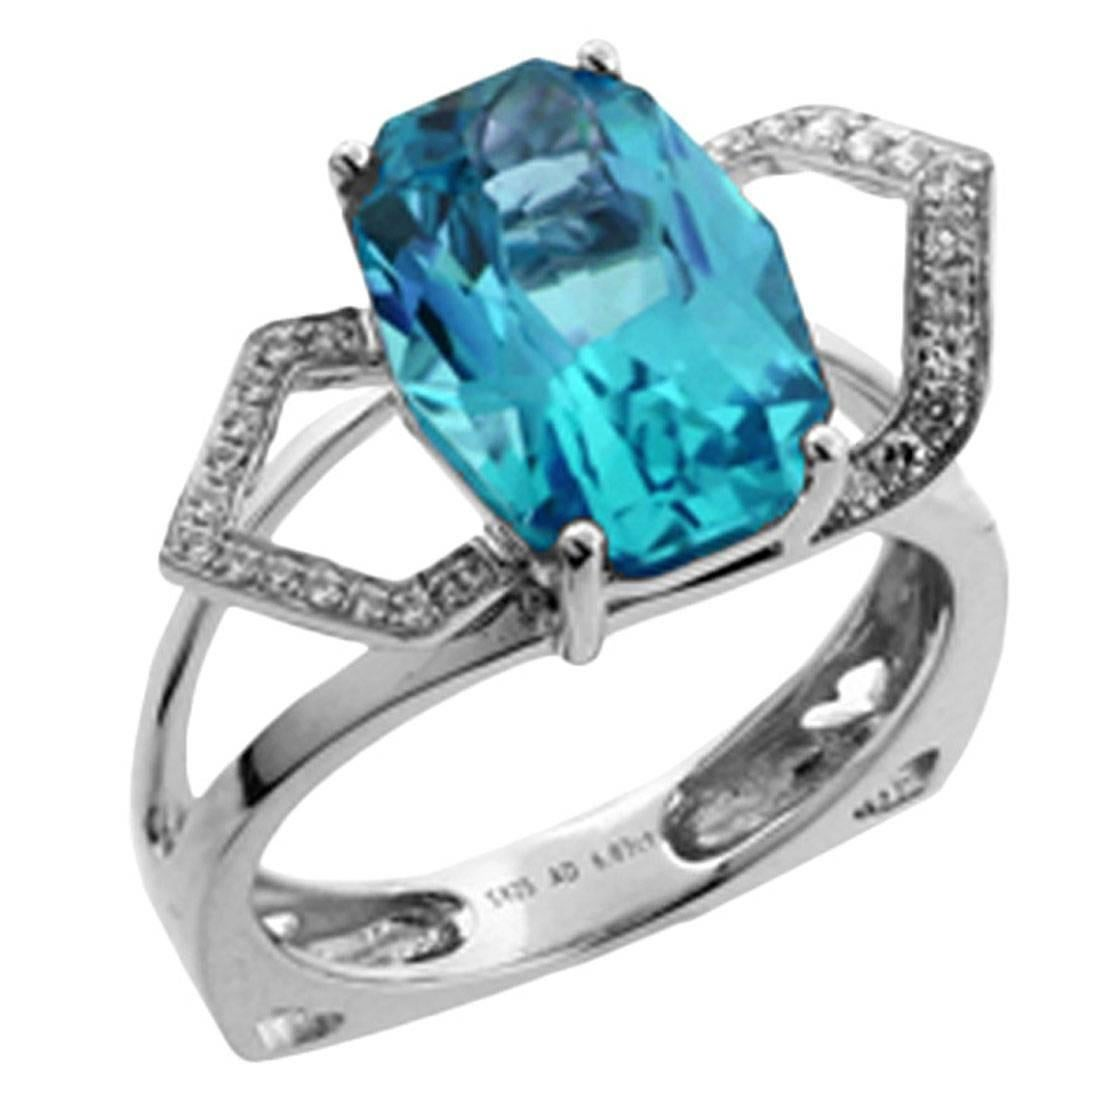 Blue Topaz and Diamond Gold Cocktail Ring Estate Fine Jewelry